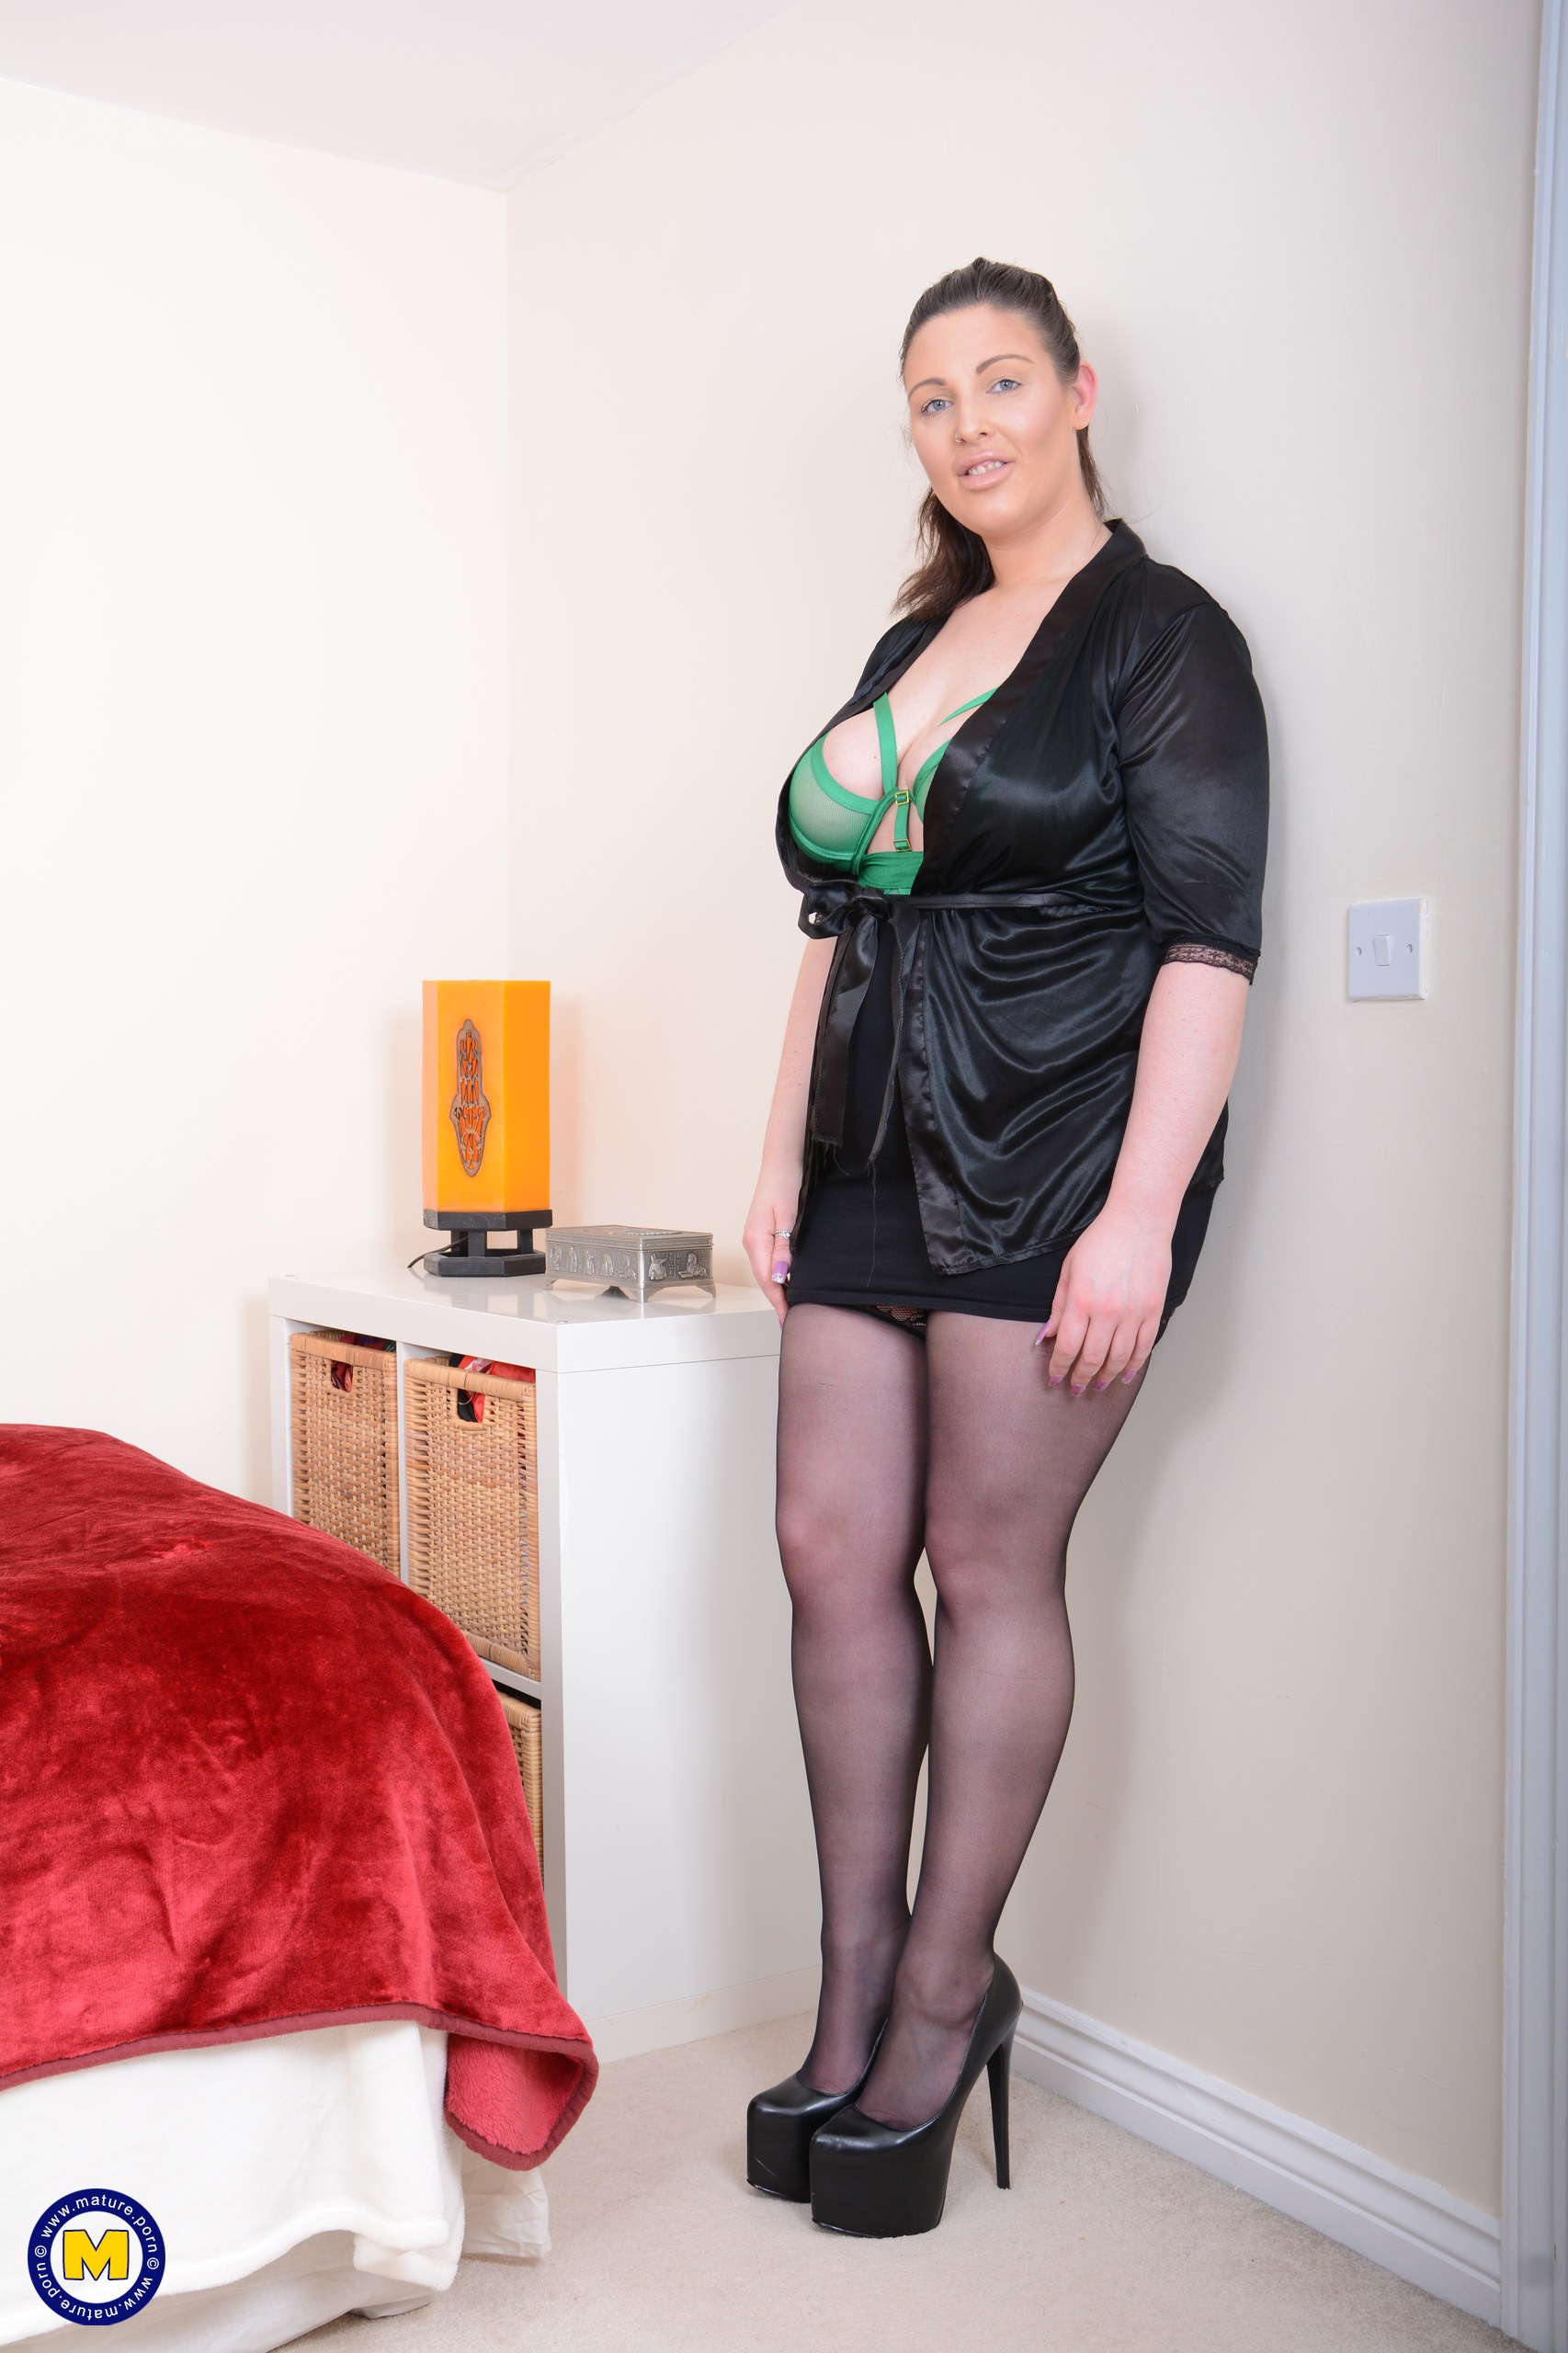 Curvy housewife Crystal | The Mature Lady Porn Blog